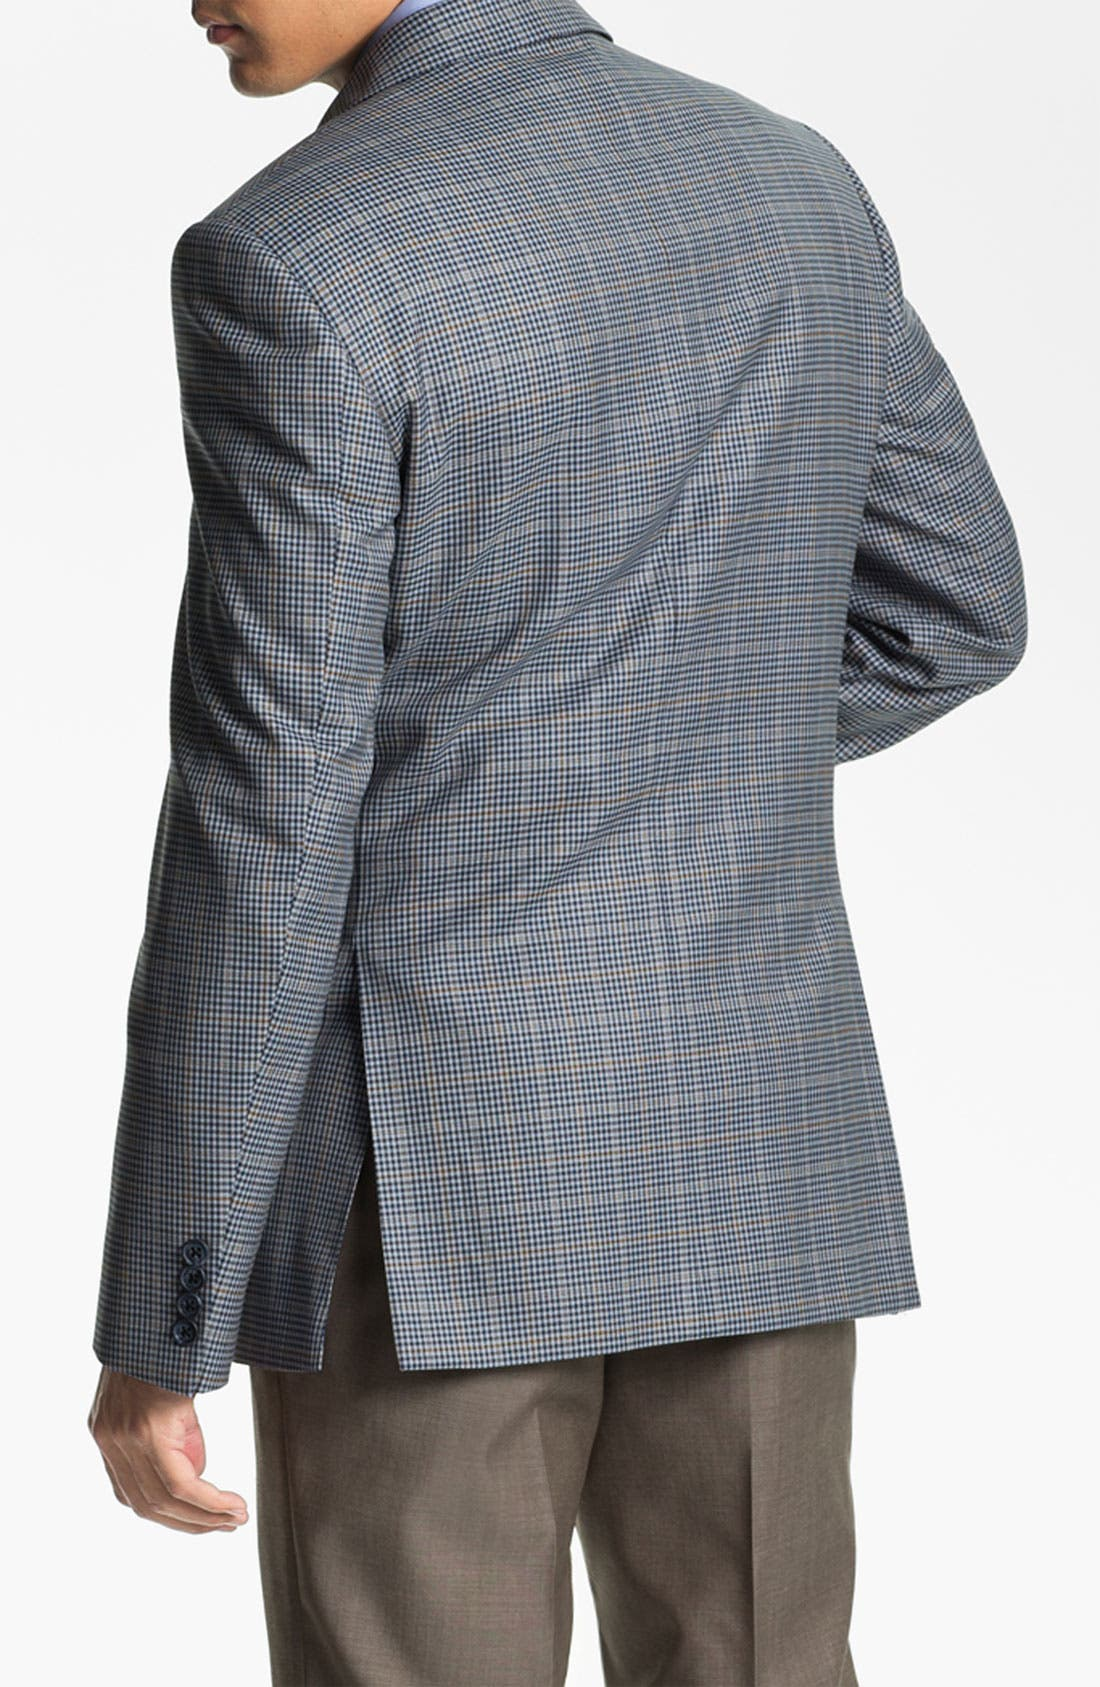 Alternate Image 2  - Joseph Abboud 'Signature Silver' Houndstooth Sportcoat